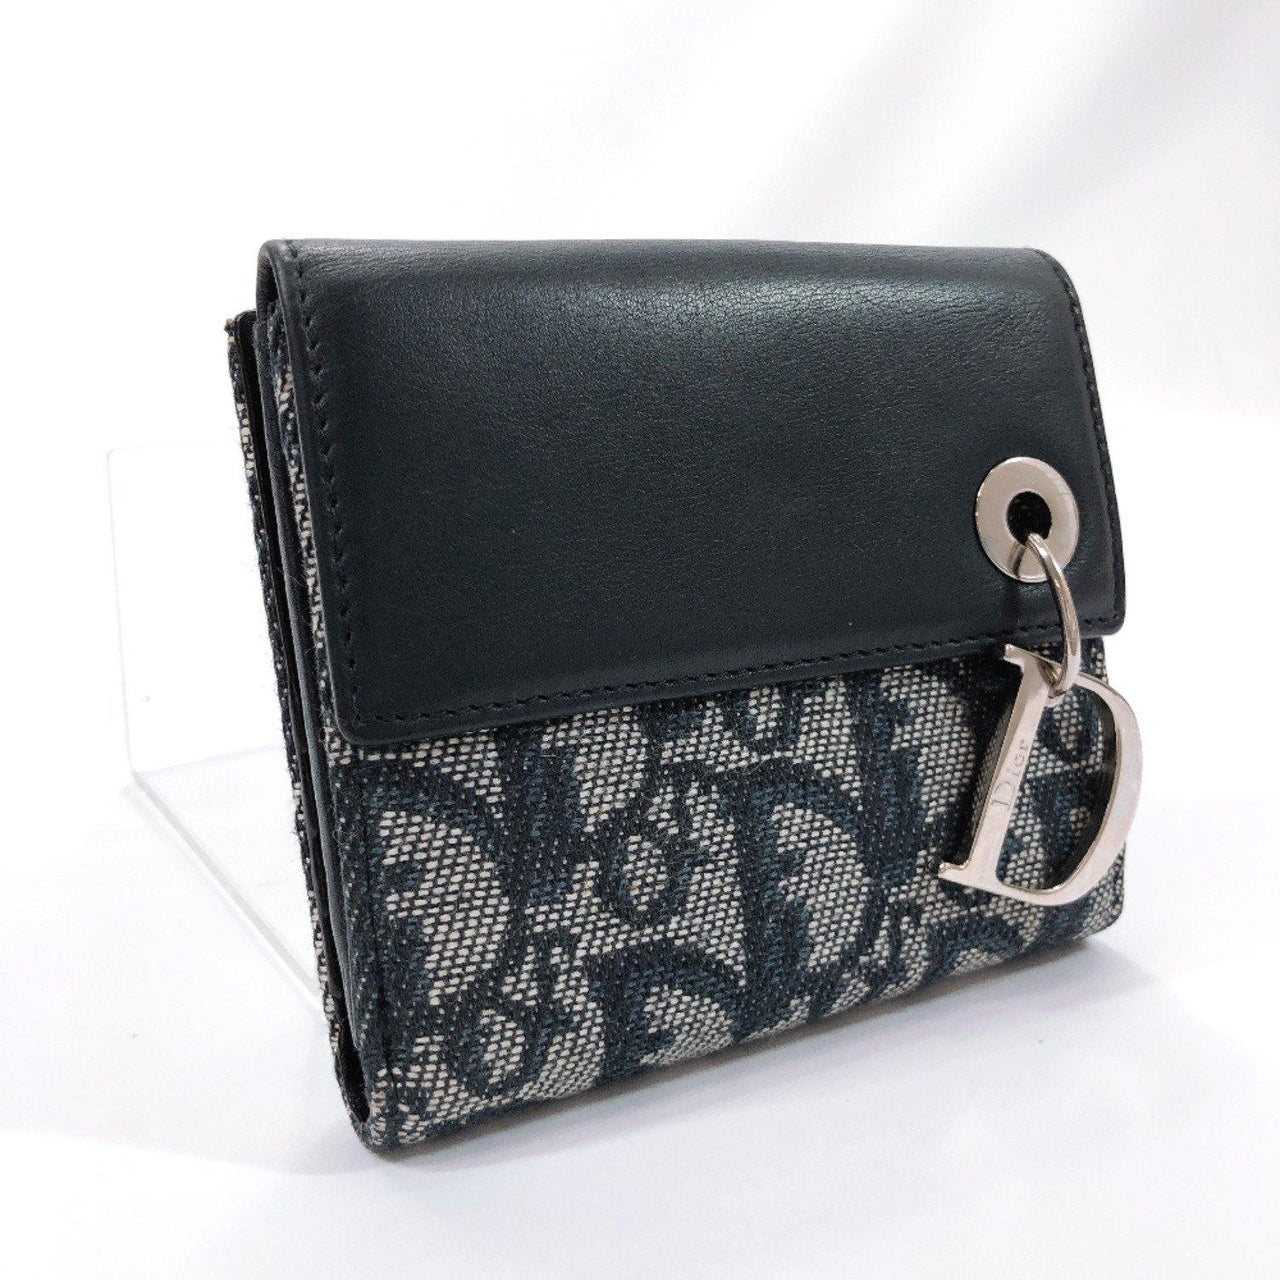 Dior wallet Trotter canvas/leather Navy SilverHardware Women Used - JP-BRANDS.com